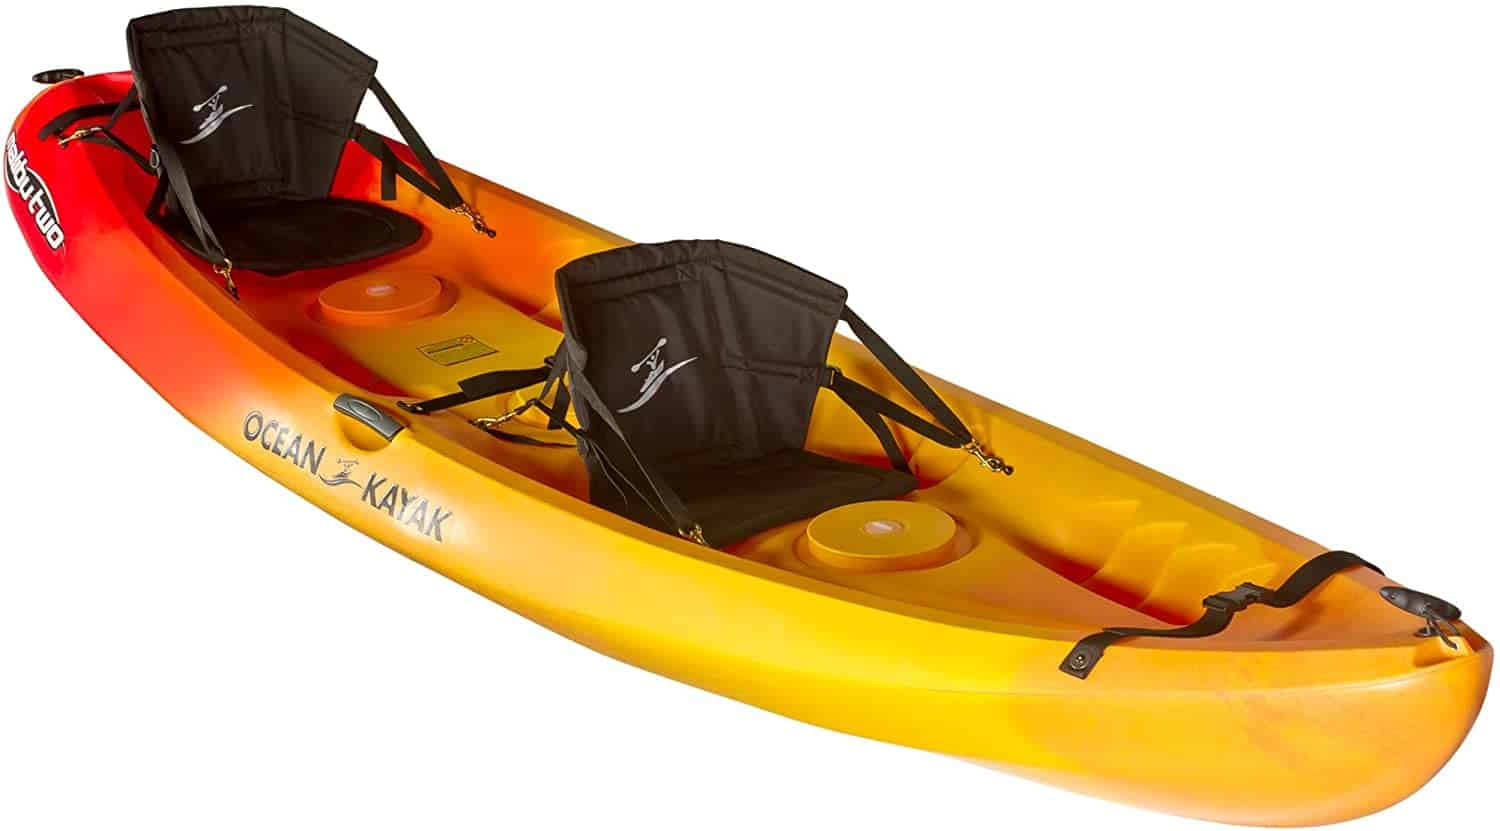 Malibu Tandem Recreational Kayak by Ocean Kayak